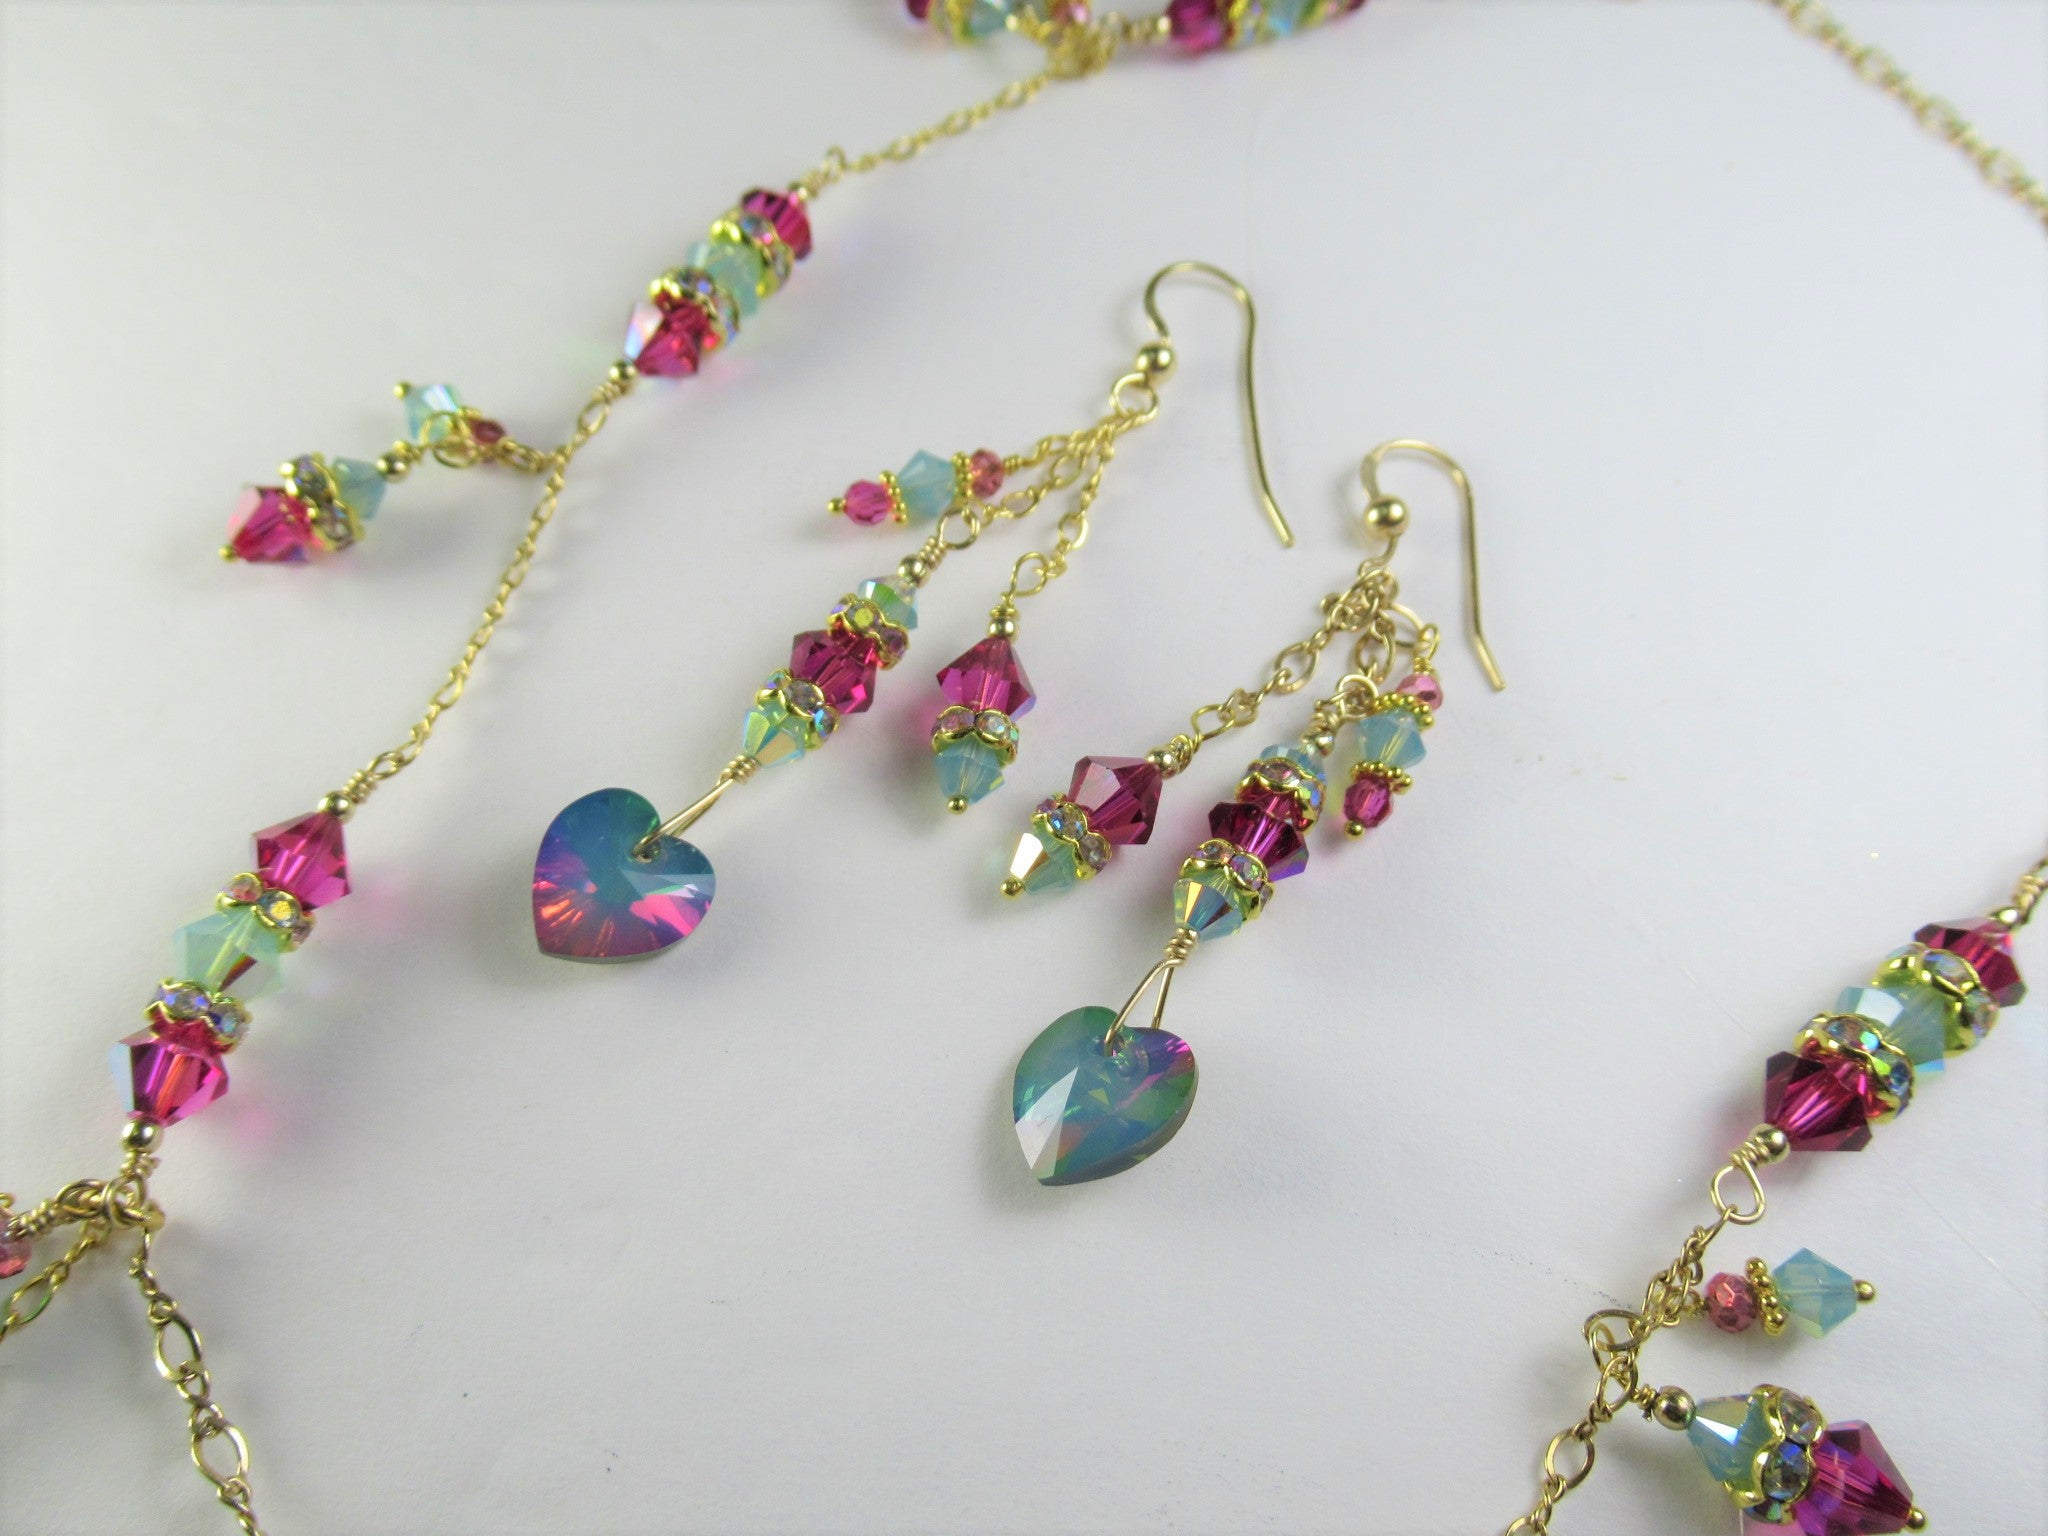 Custom for Leah - Customized Swarovski Heart Necklace and Earring Set in White Opal Electra on 14k Gold Fill - Odyssey Creations